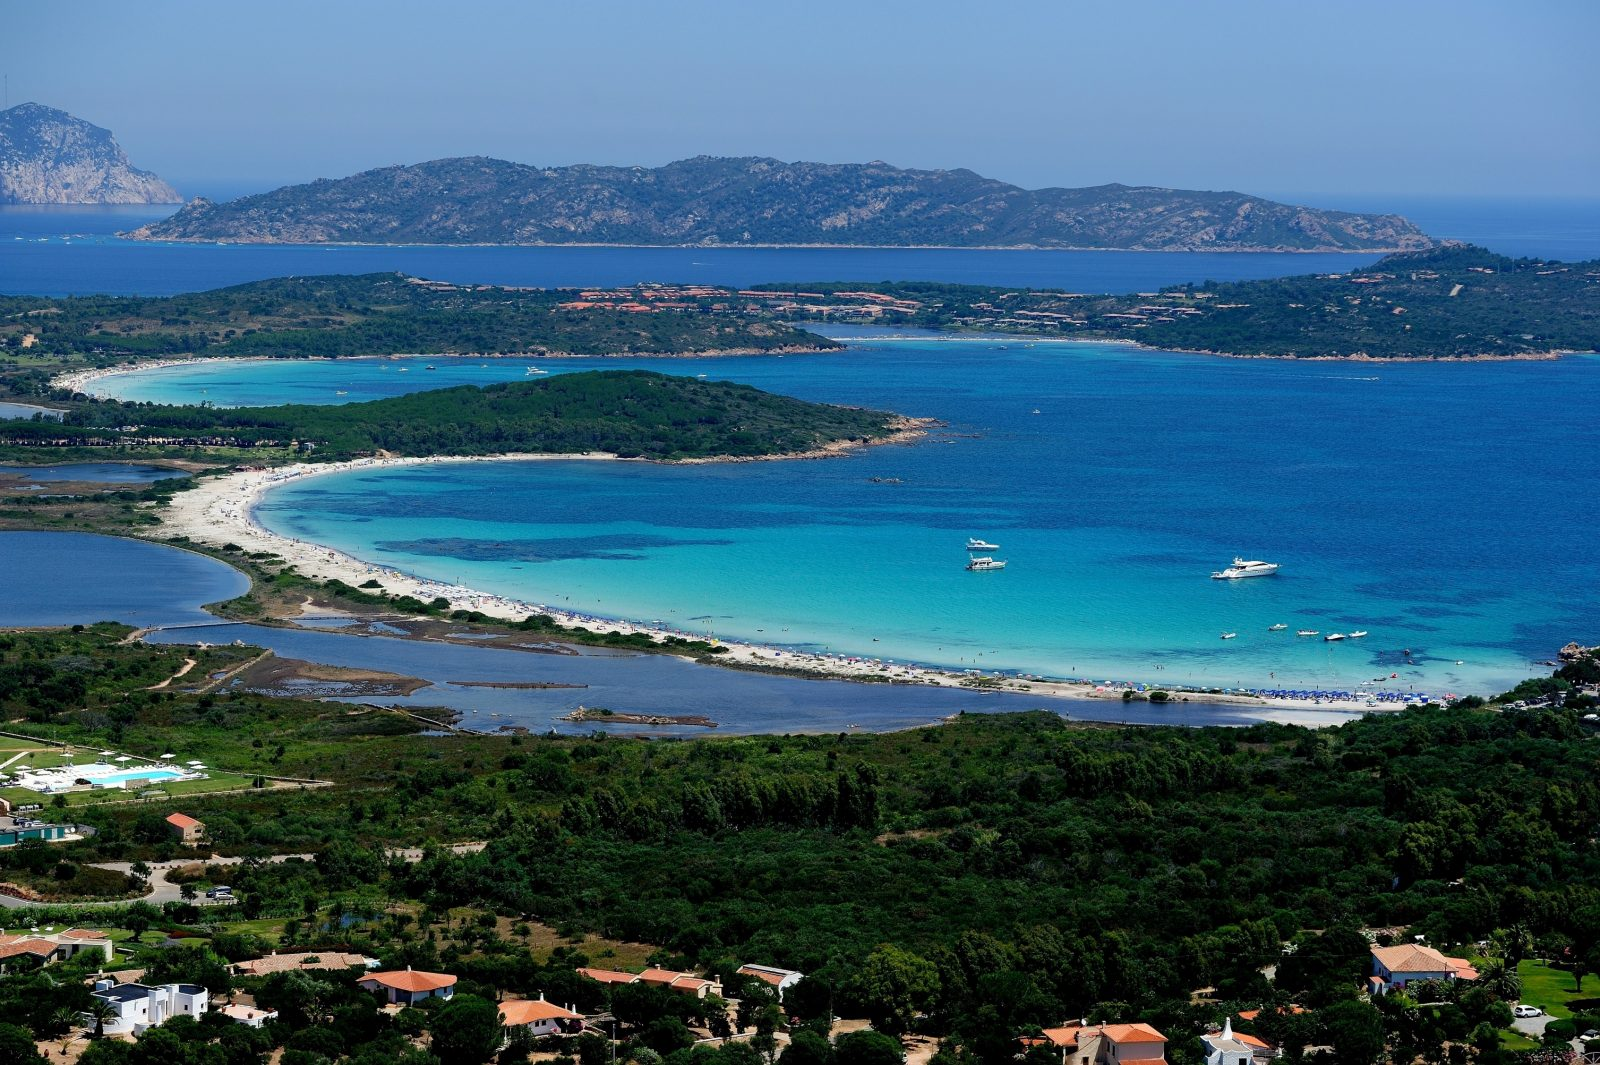 Beaches of San Teodoro